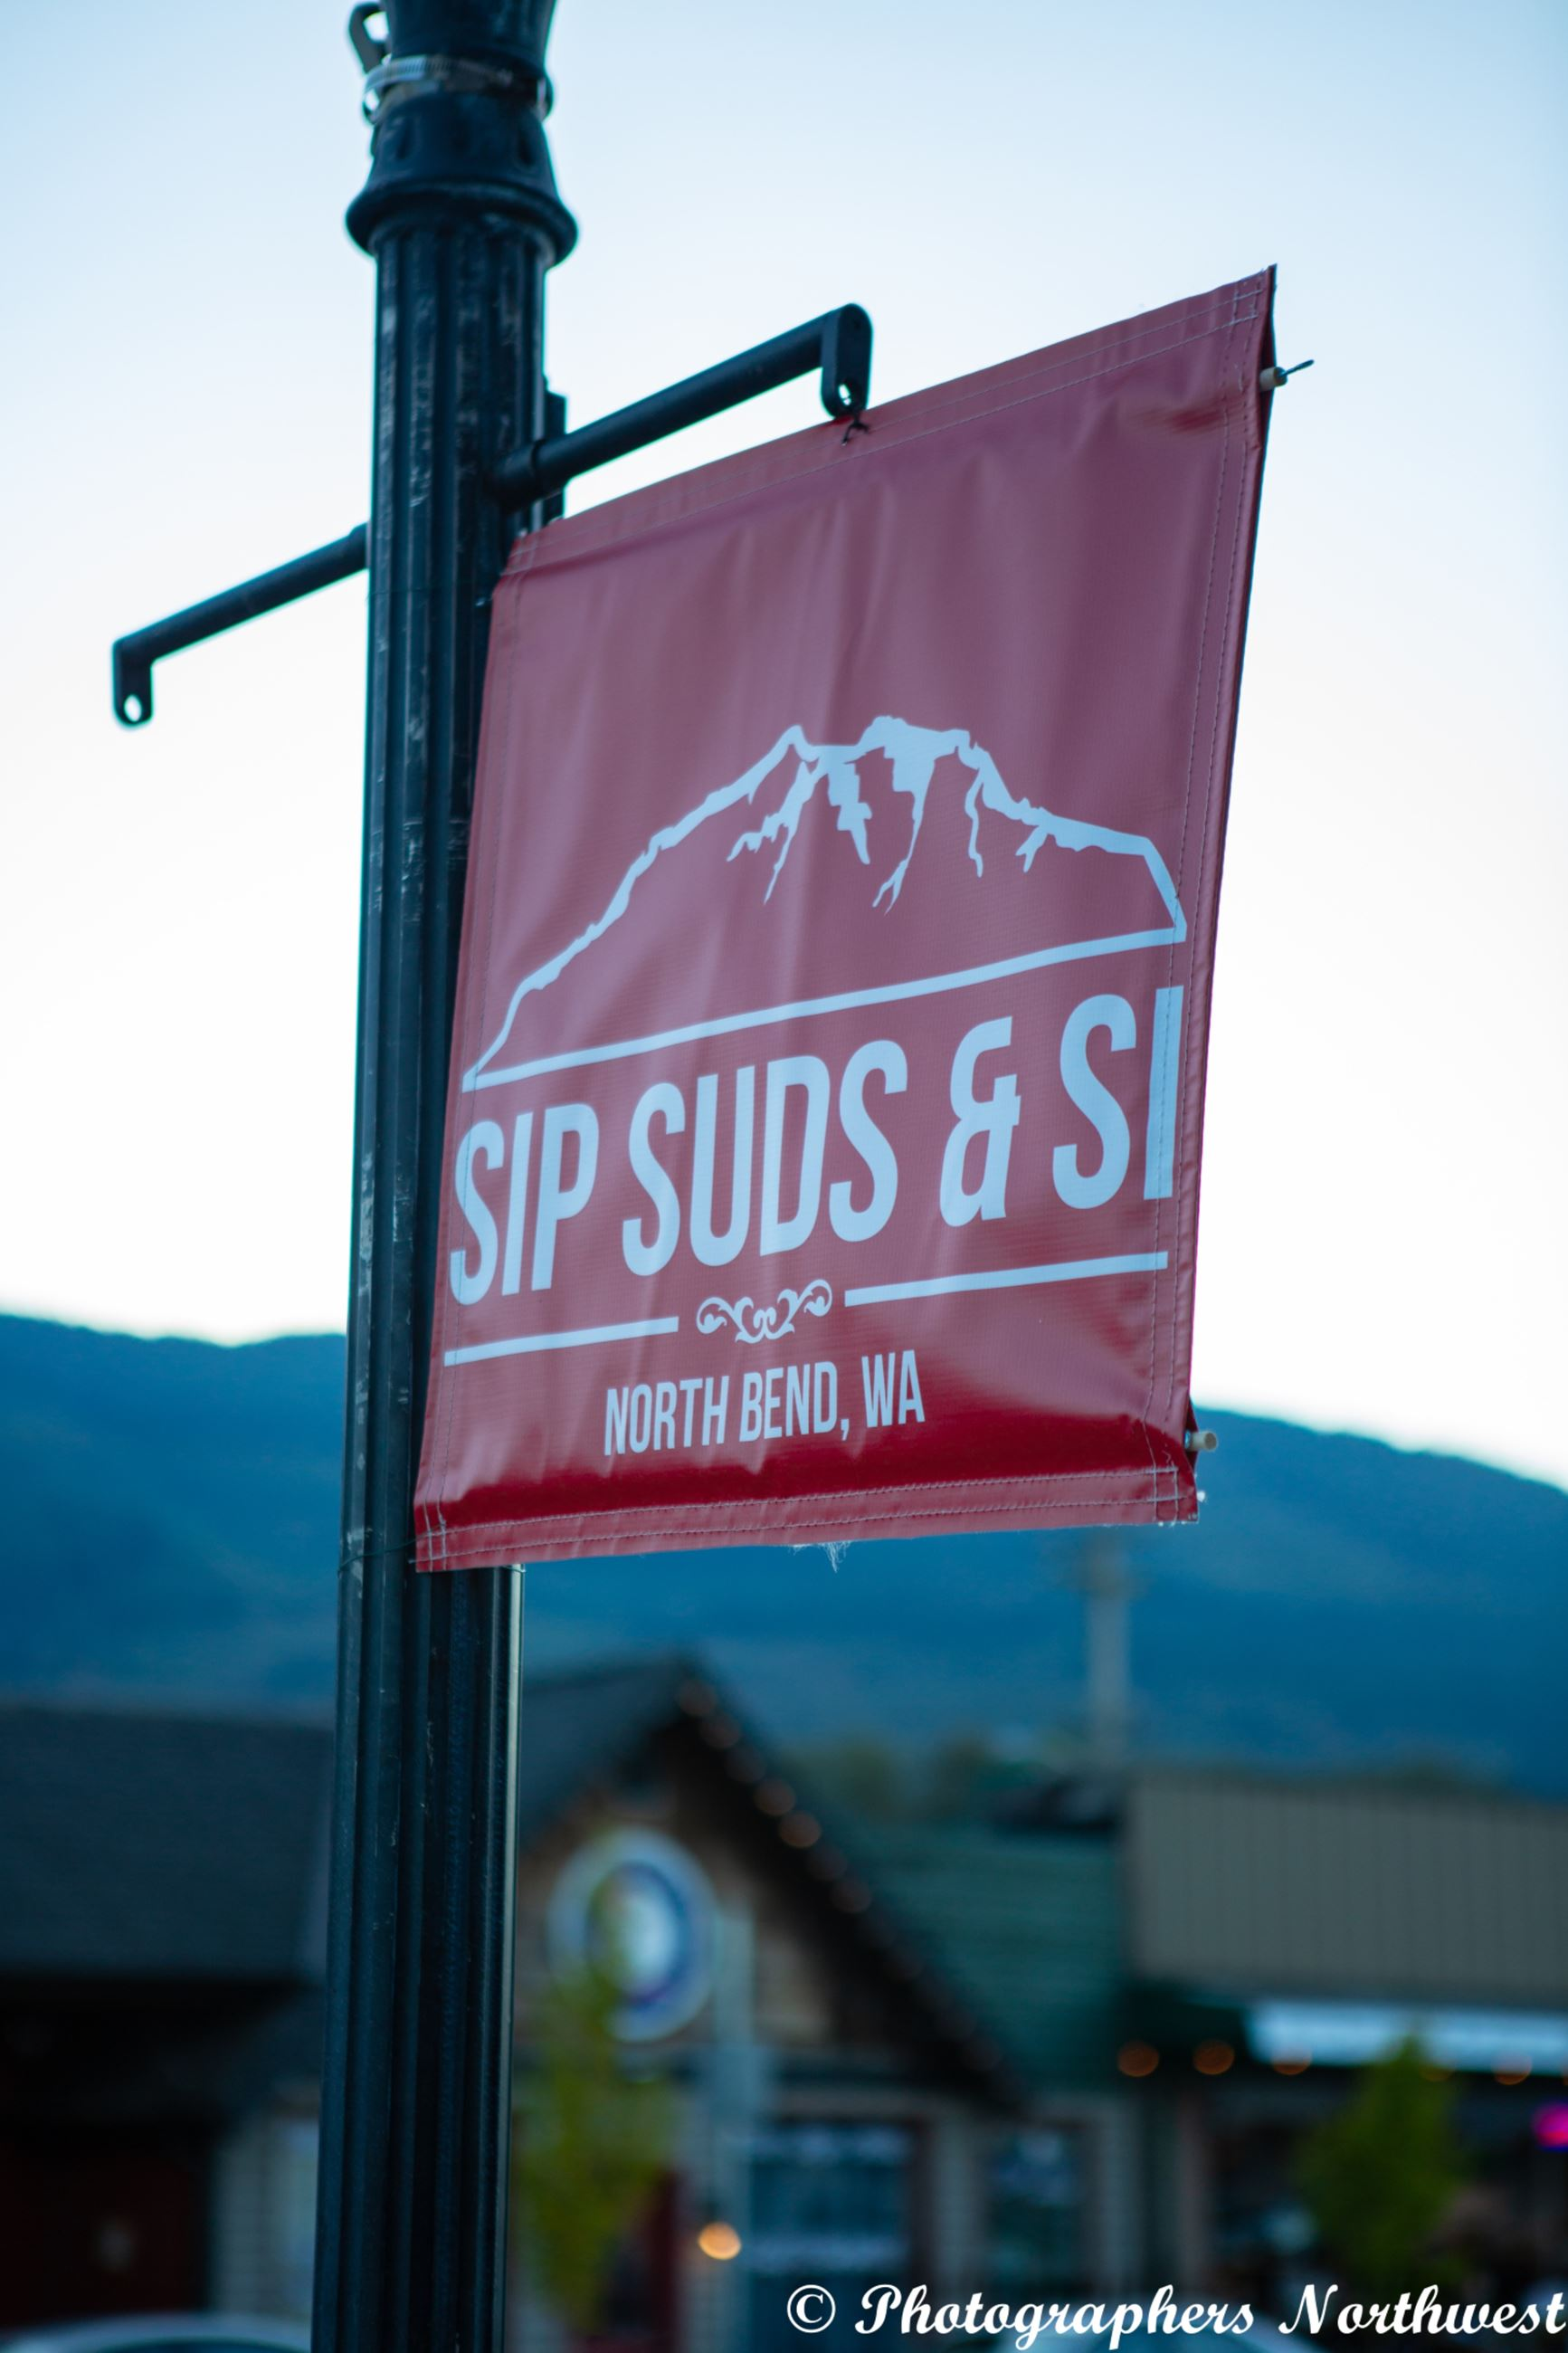 Sip Suds & Si! Photo courtesy of Scott Scherer (www.photographersnw.com)